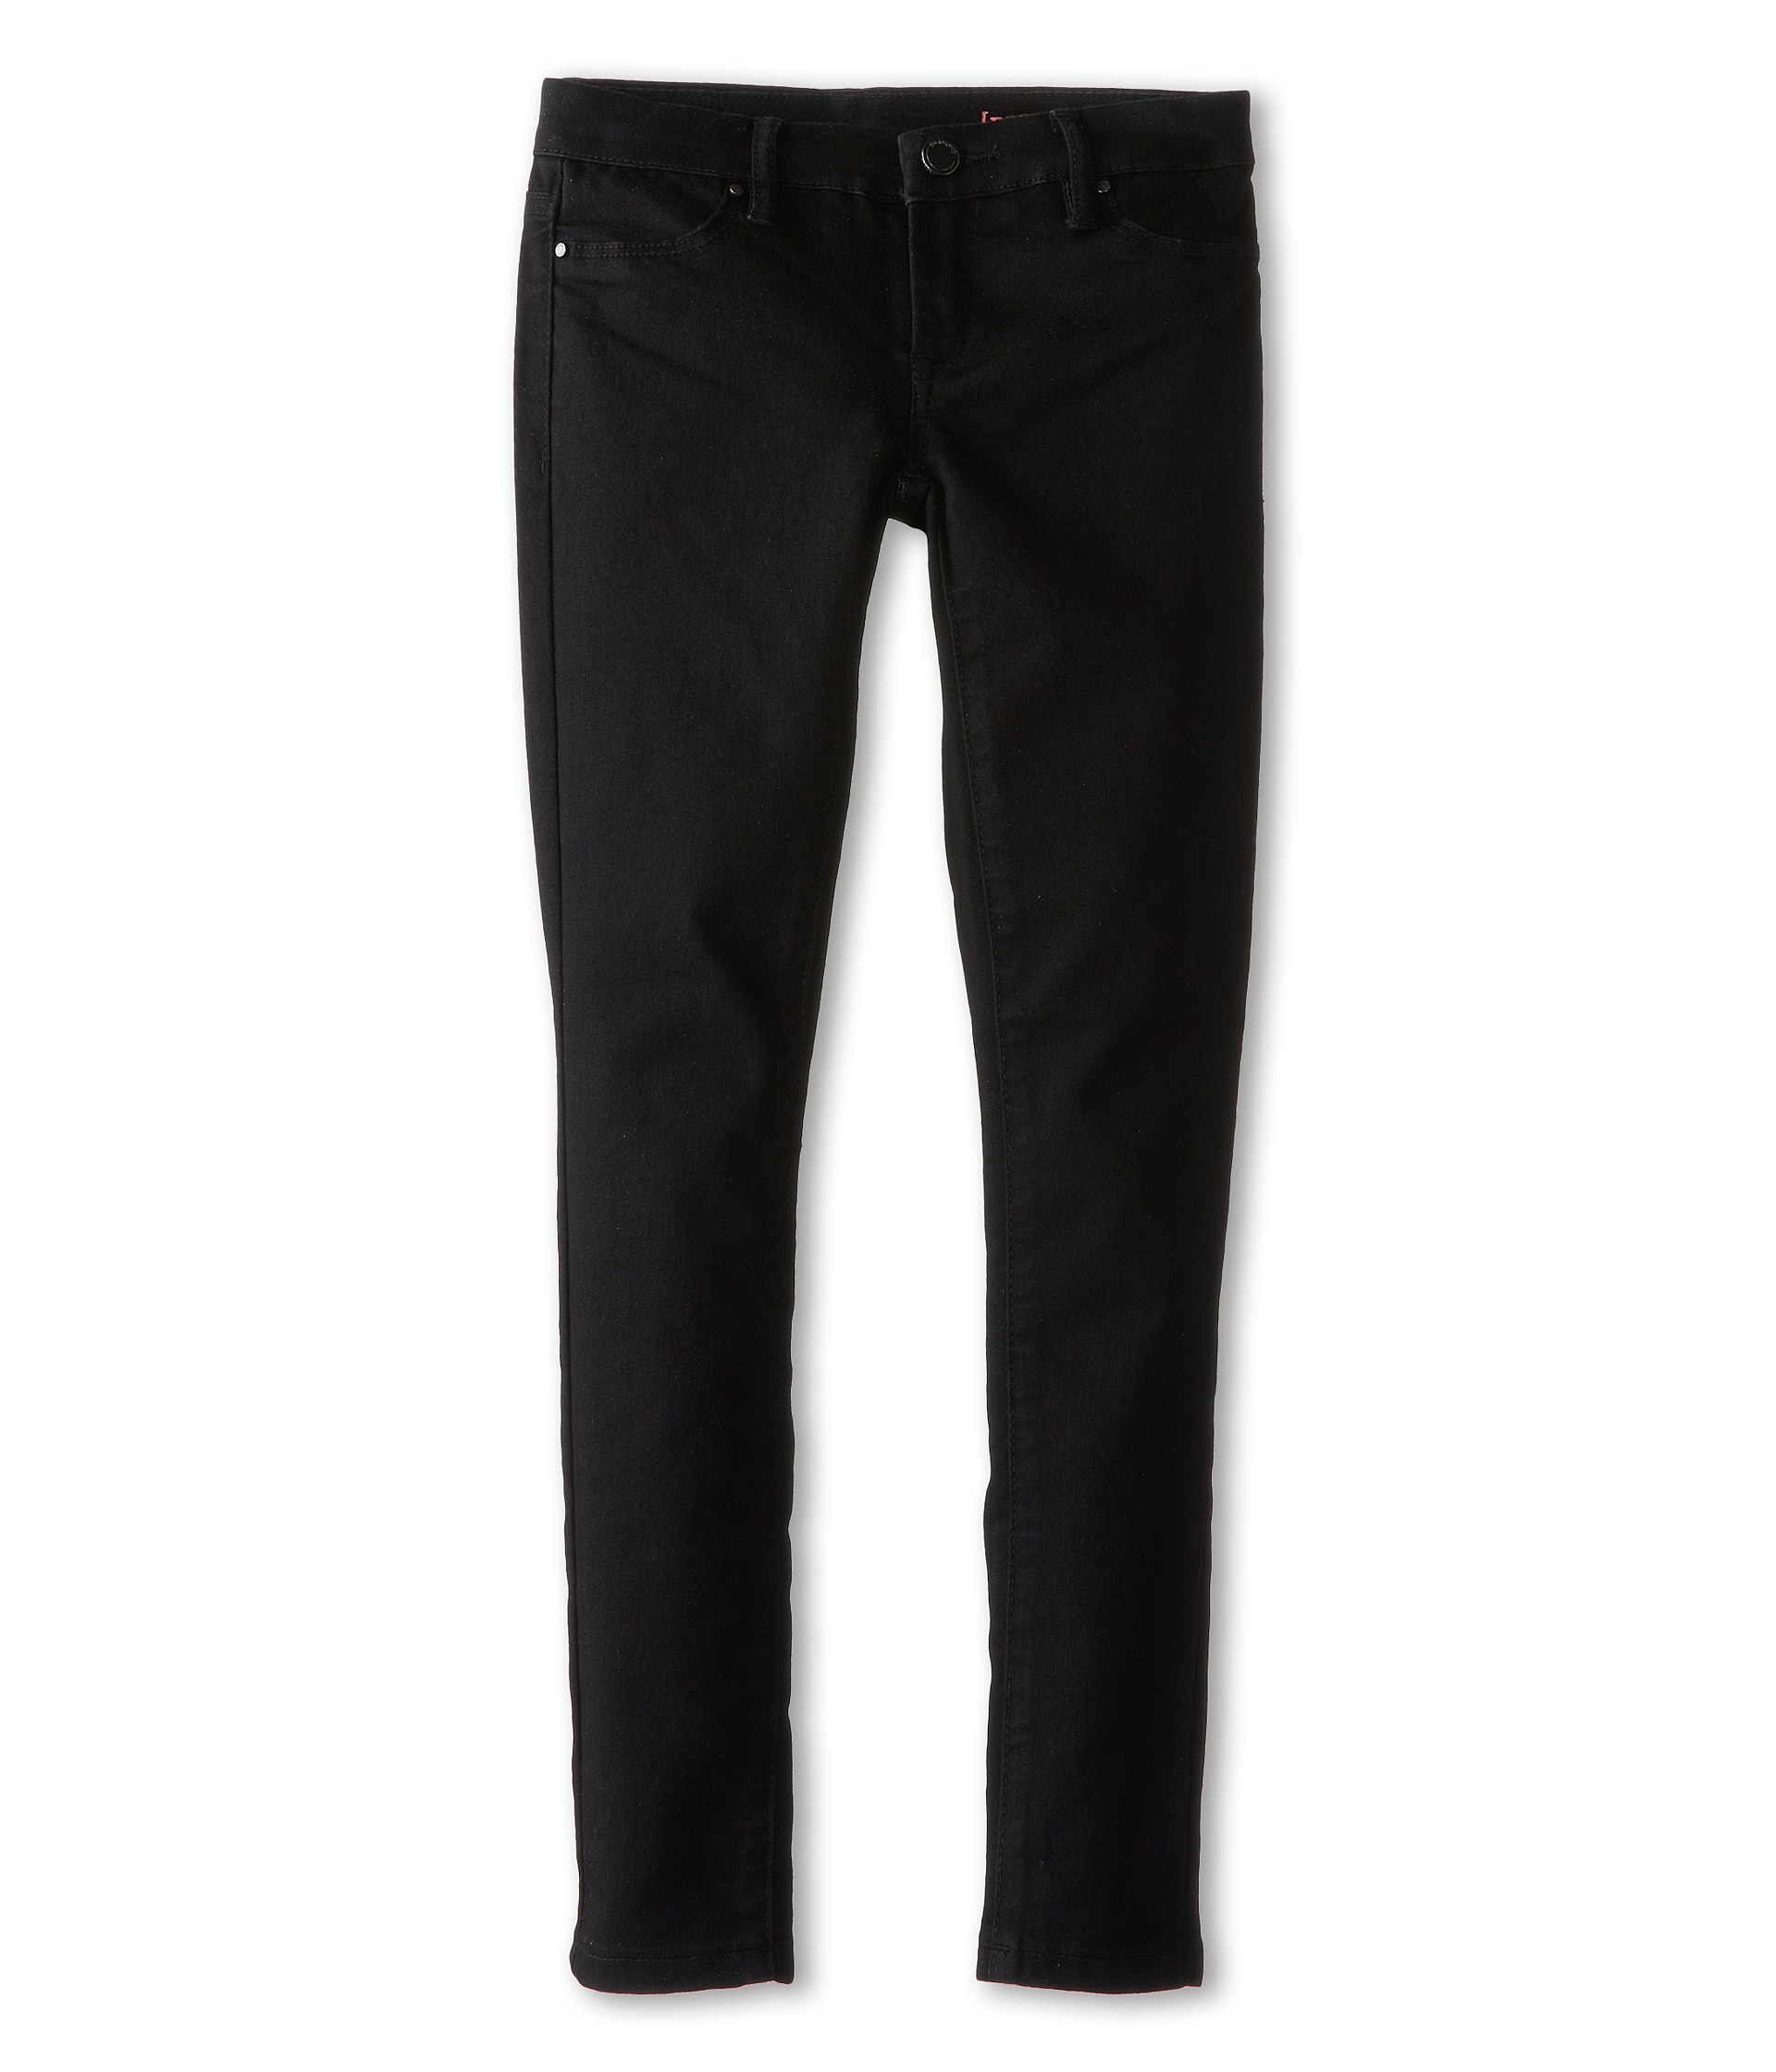 Find great deals on eBay for toddler black jeans. Shop with confidence.